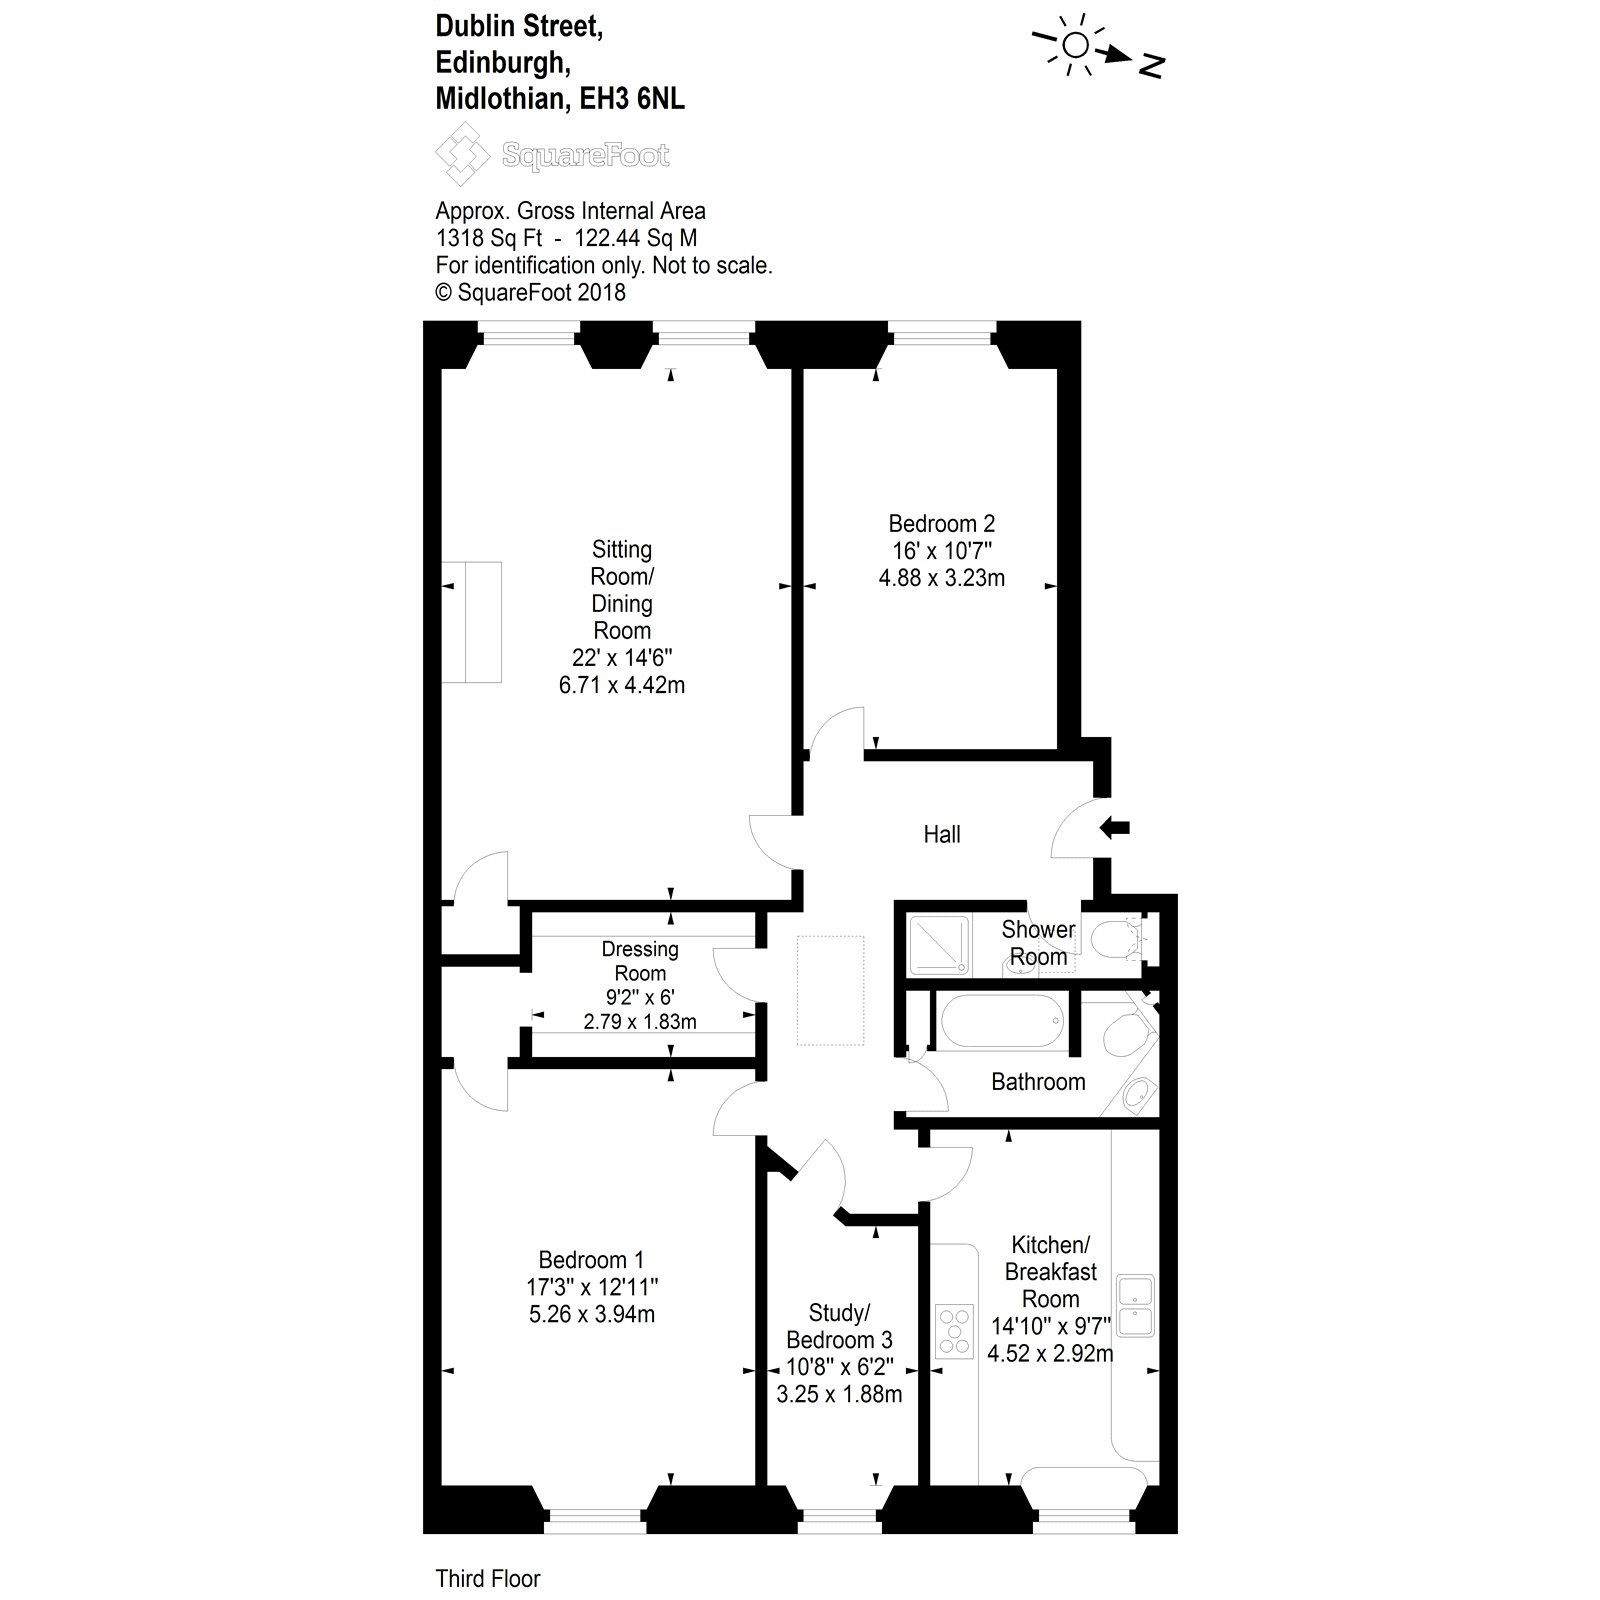 Floorplans for Dublin Street, Edinburgh, EH3